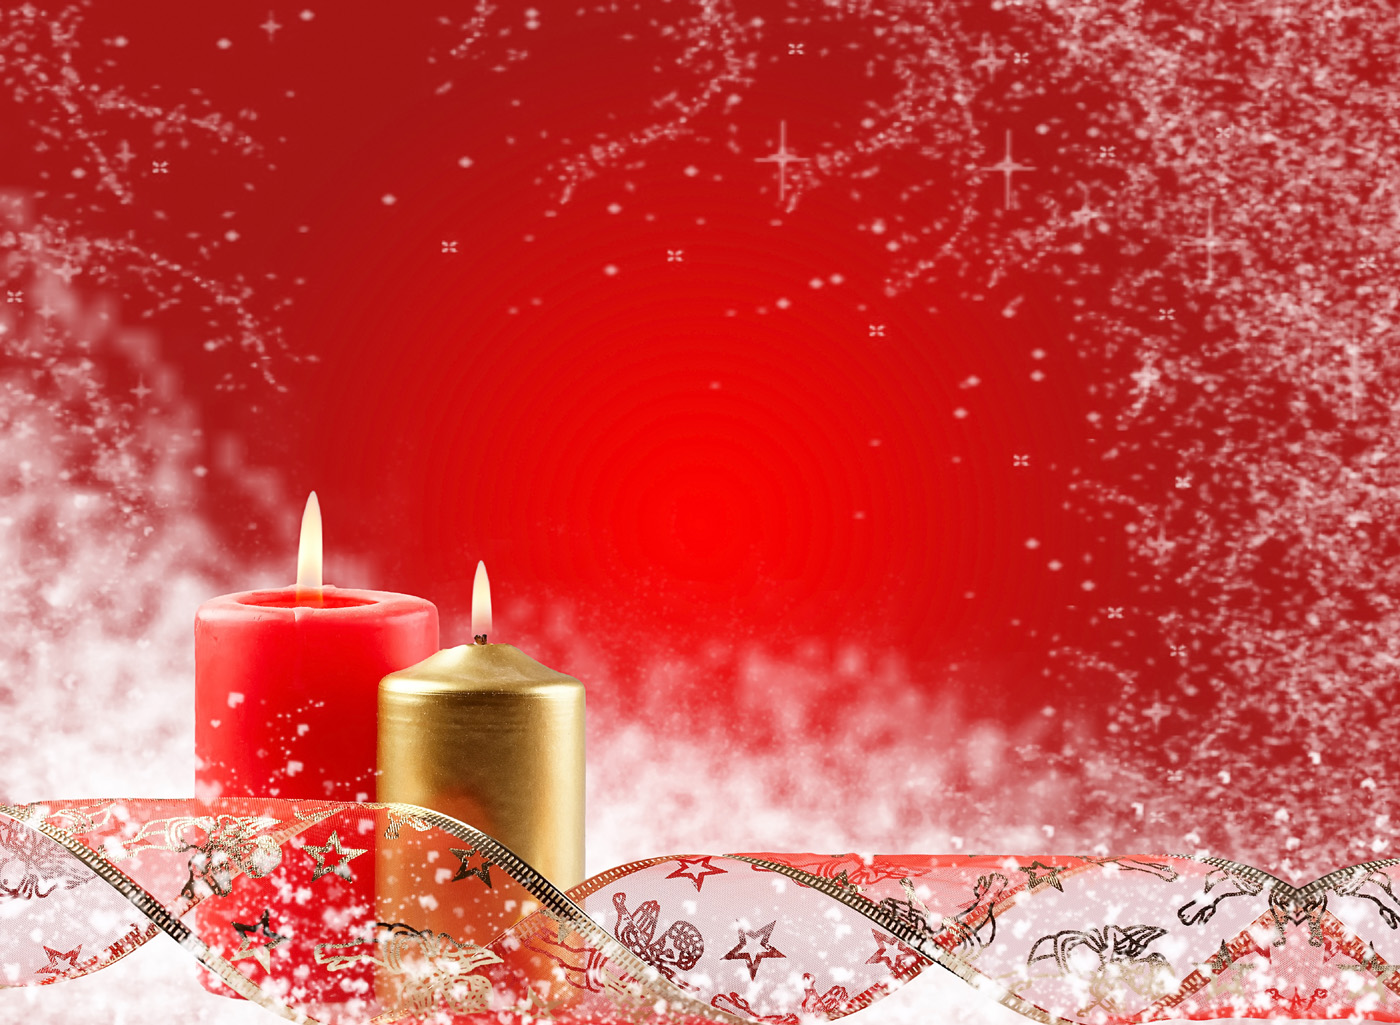 Christmas background 27809